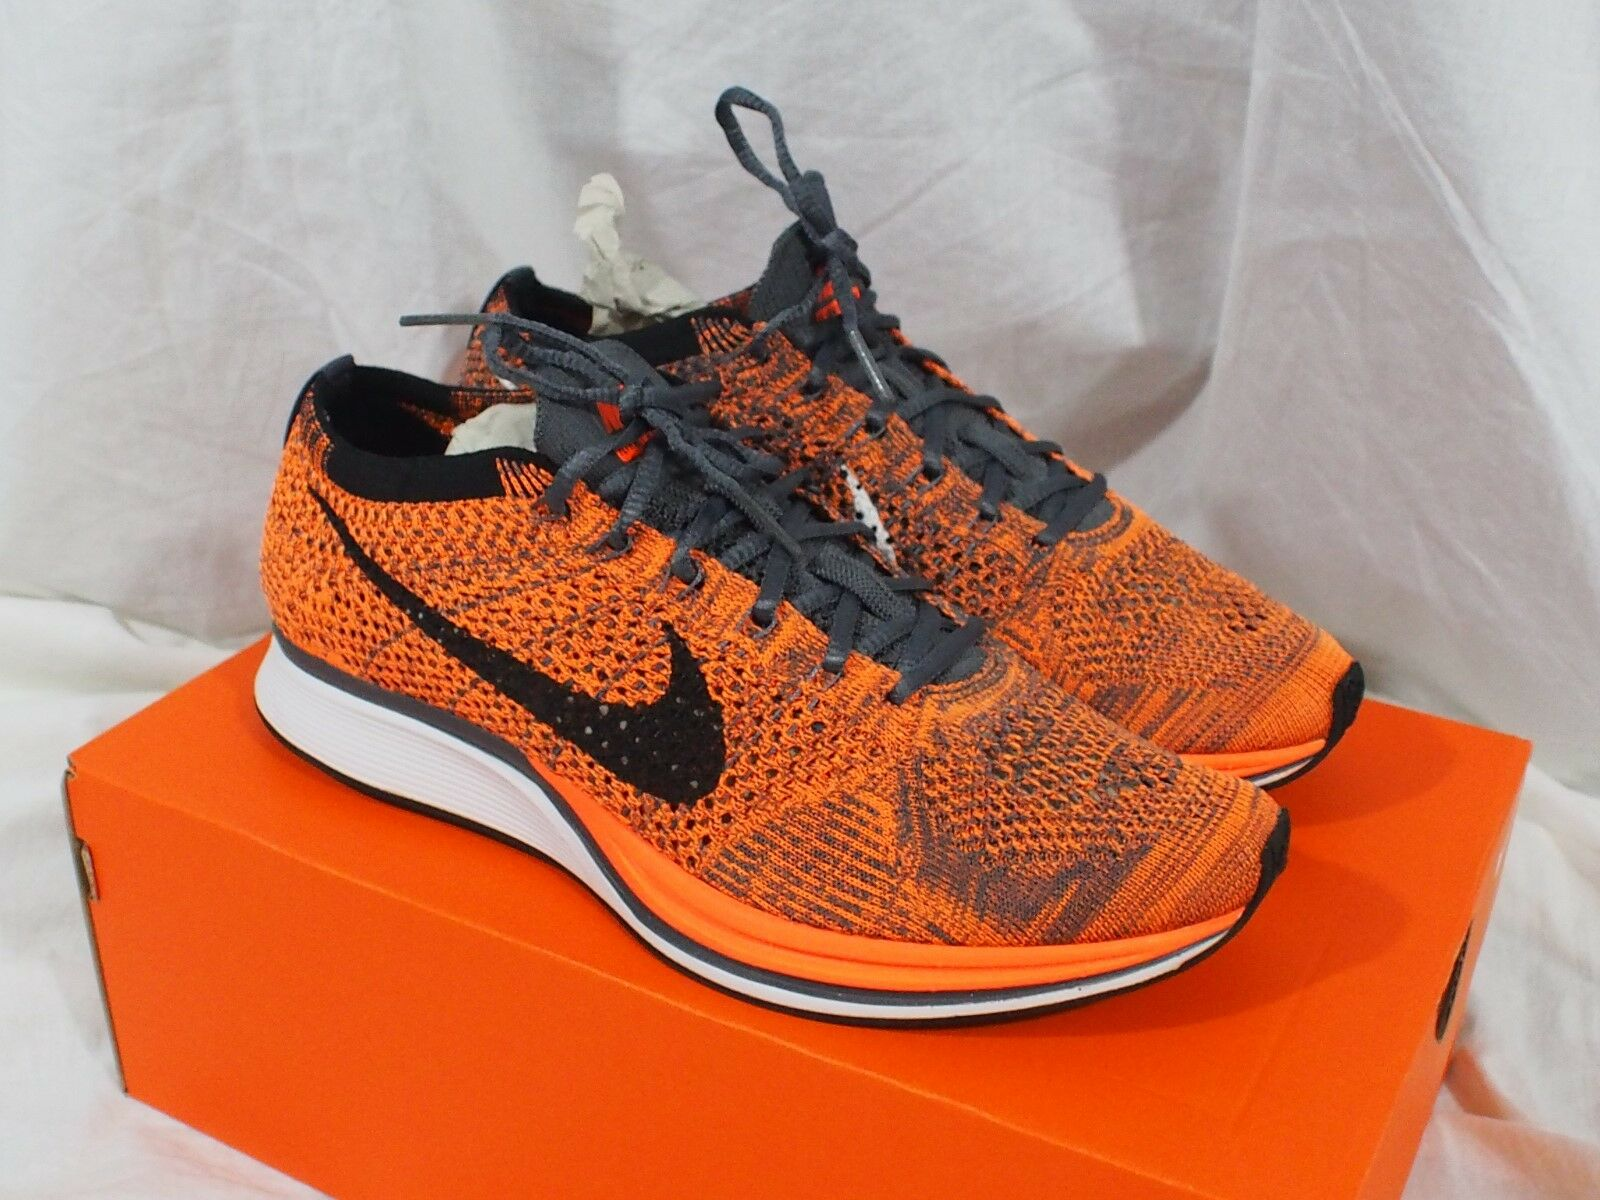 Nike flyknit racer totale orange tigro 526628-810